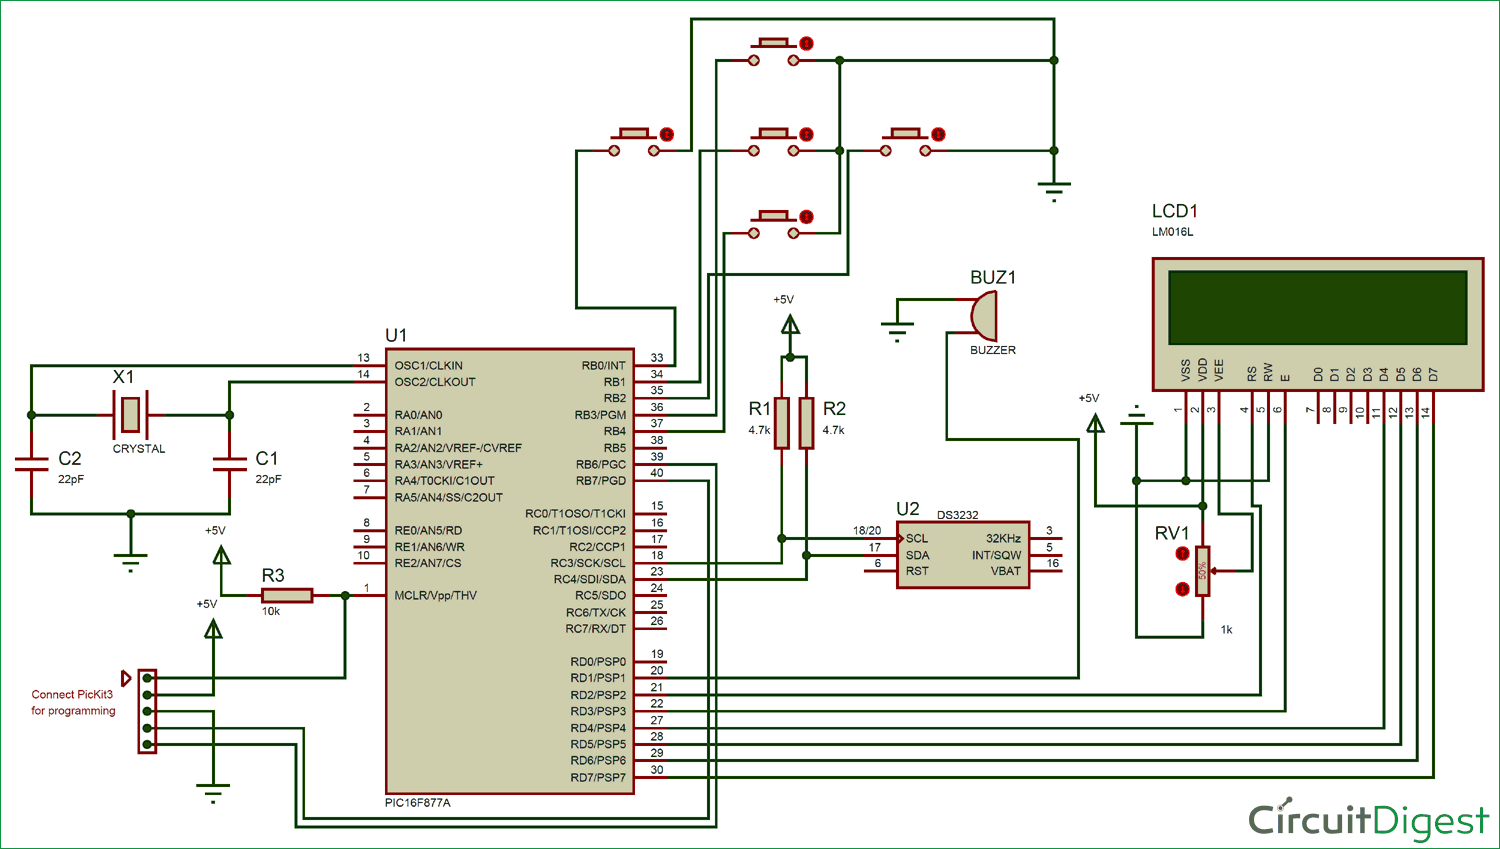 Digital Alarm Clock Circuit Diagram Using Pic Microcontroller Shows The Required 8051